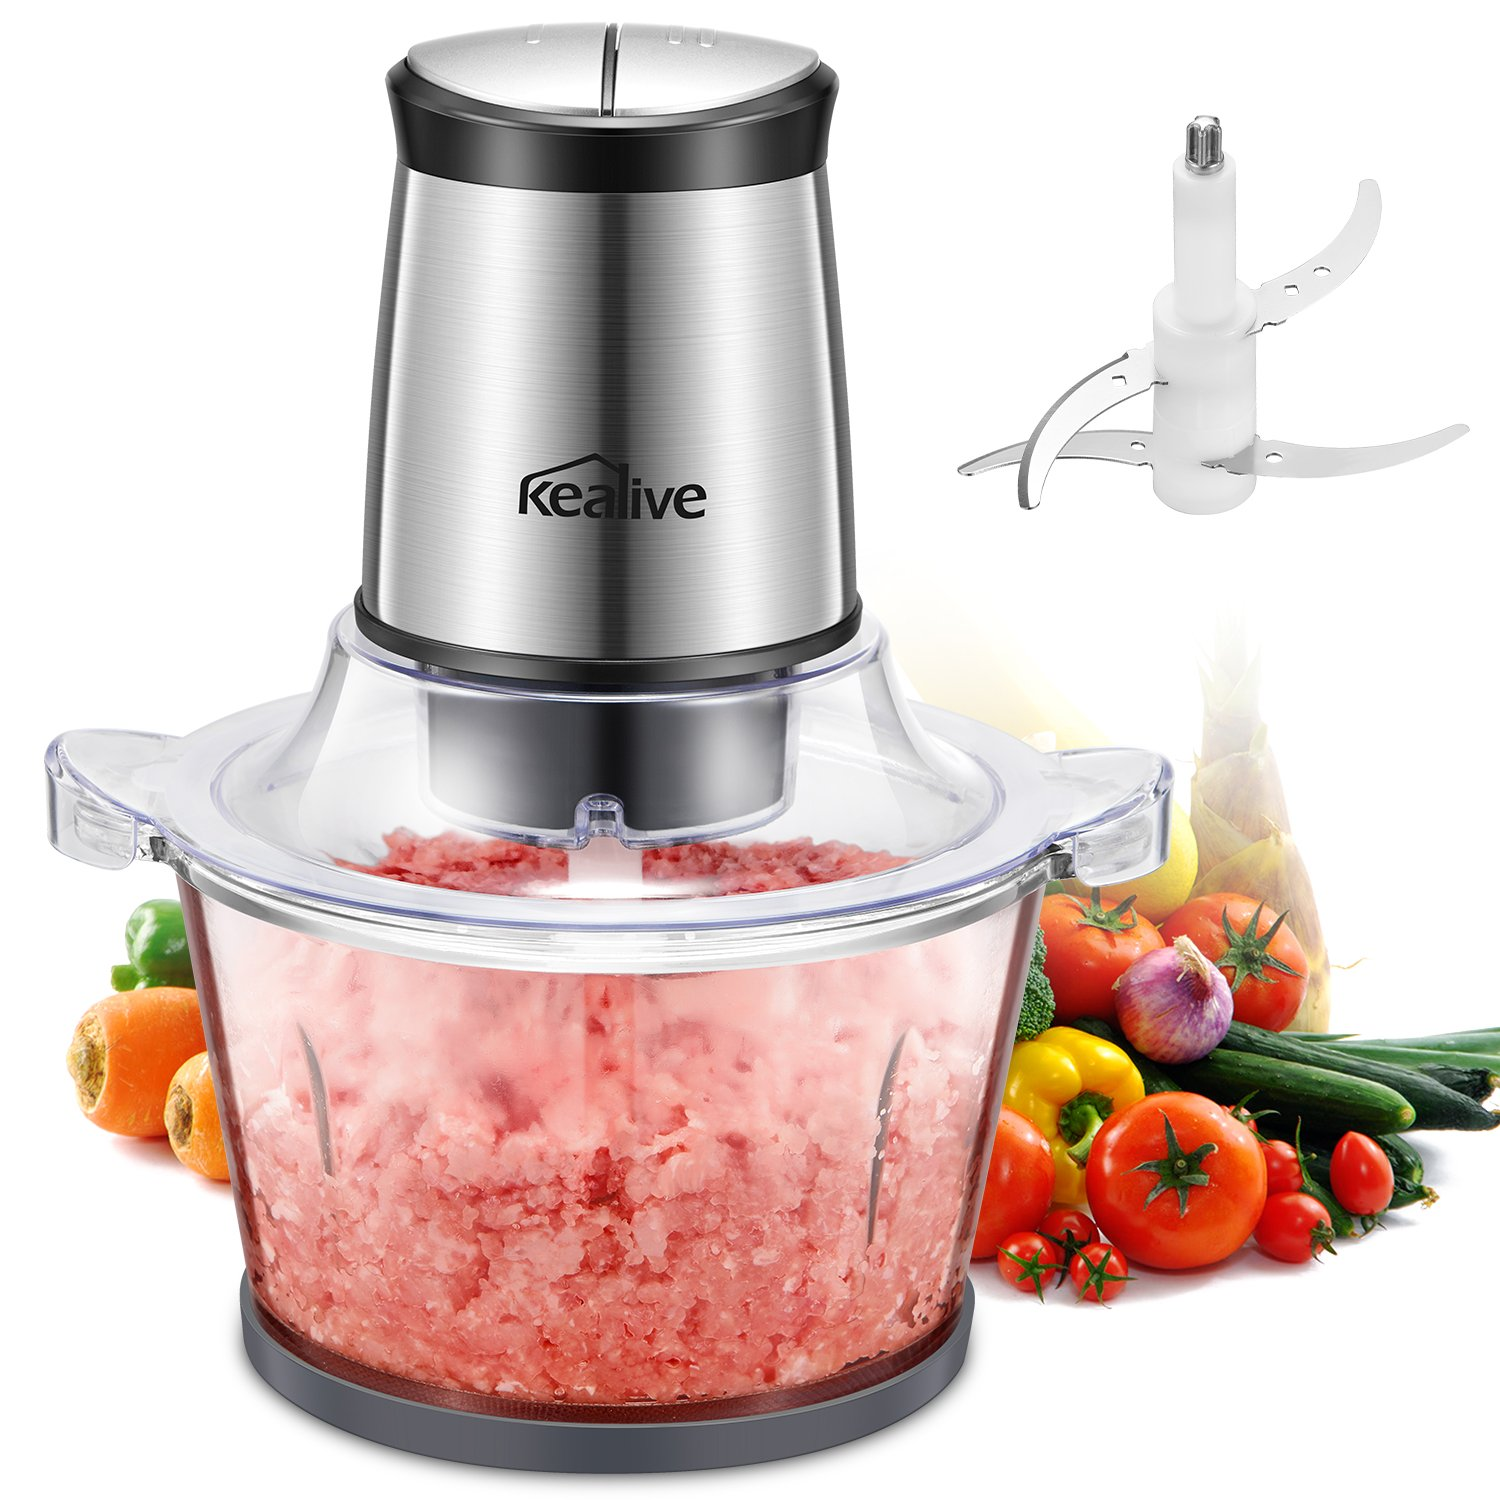 Kealive Electric Food Processor, 300W Meat Grinder, Multipurpose Kitchen Food Chopper for Meat, Vegetables, Fruit and Nuts with High/Low Speed Choice, 1.5 Liter Glass Bowl LB7004A